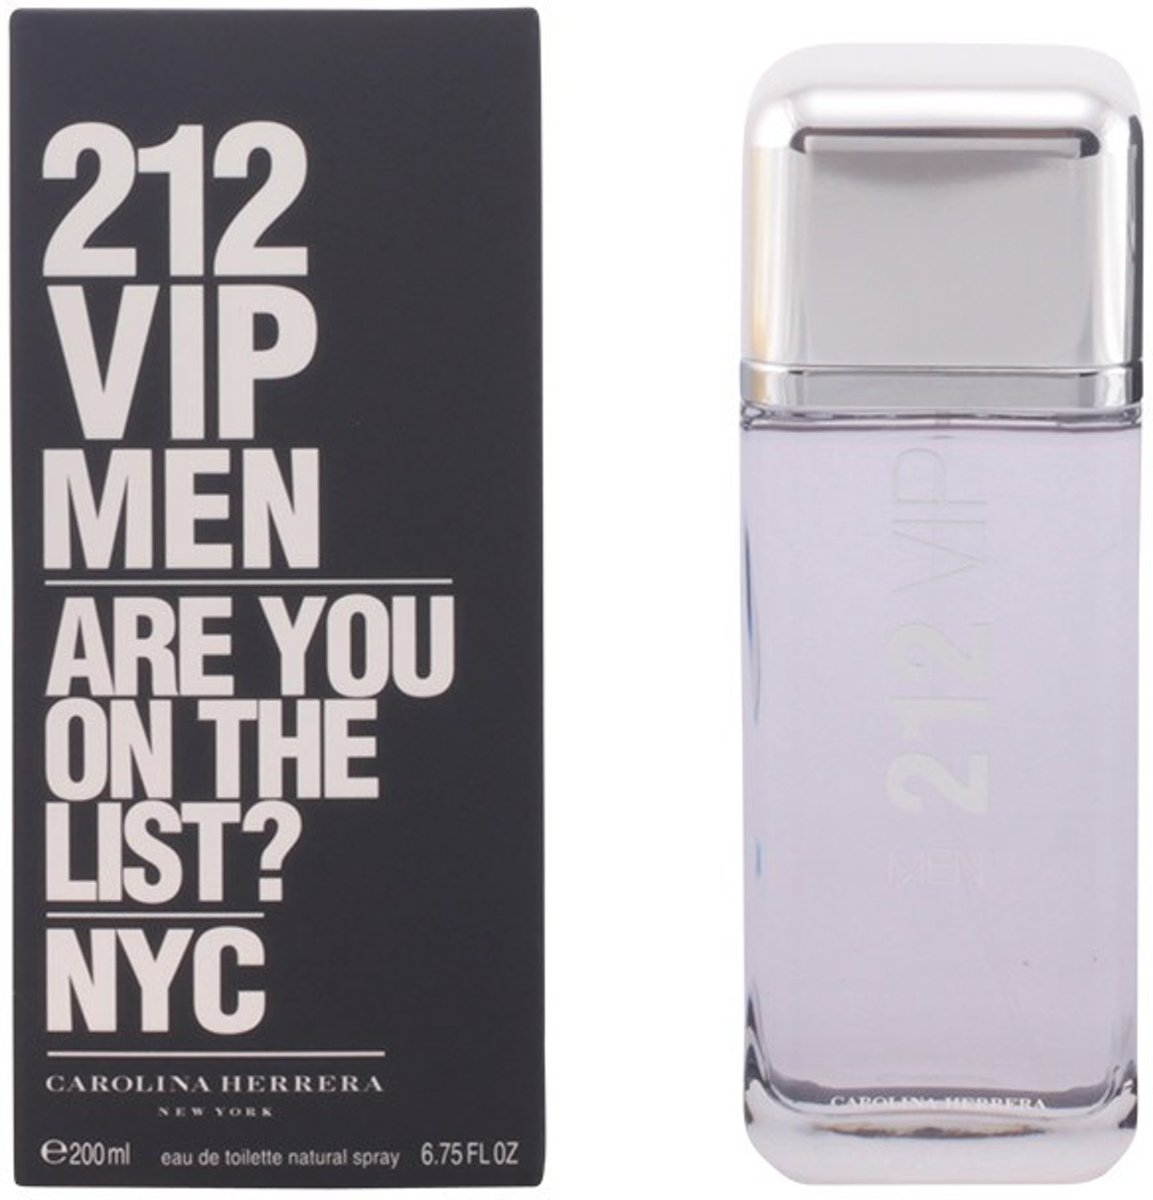 MULTI BUNDEL 2 stuks 212 VIP MEN Eau de Toilette Spray 200 ml